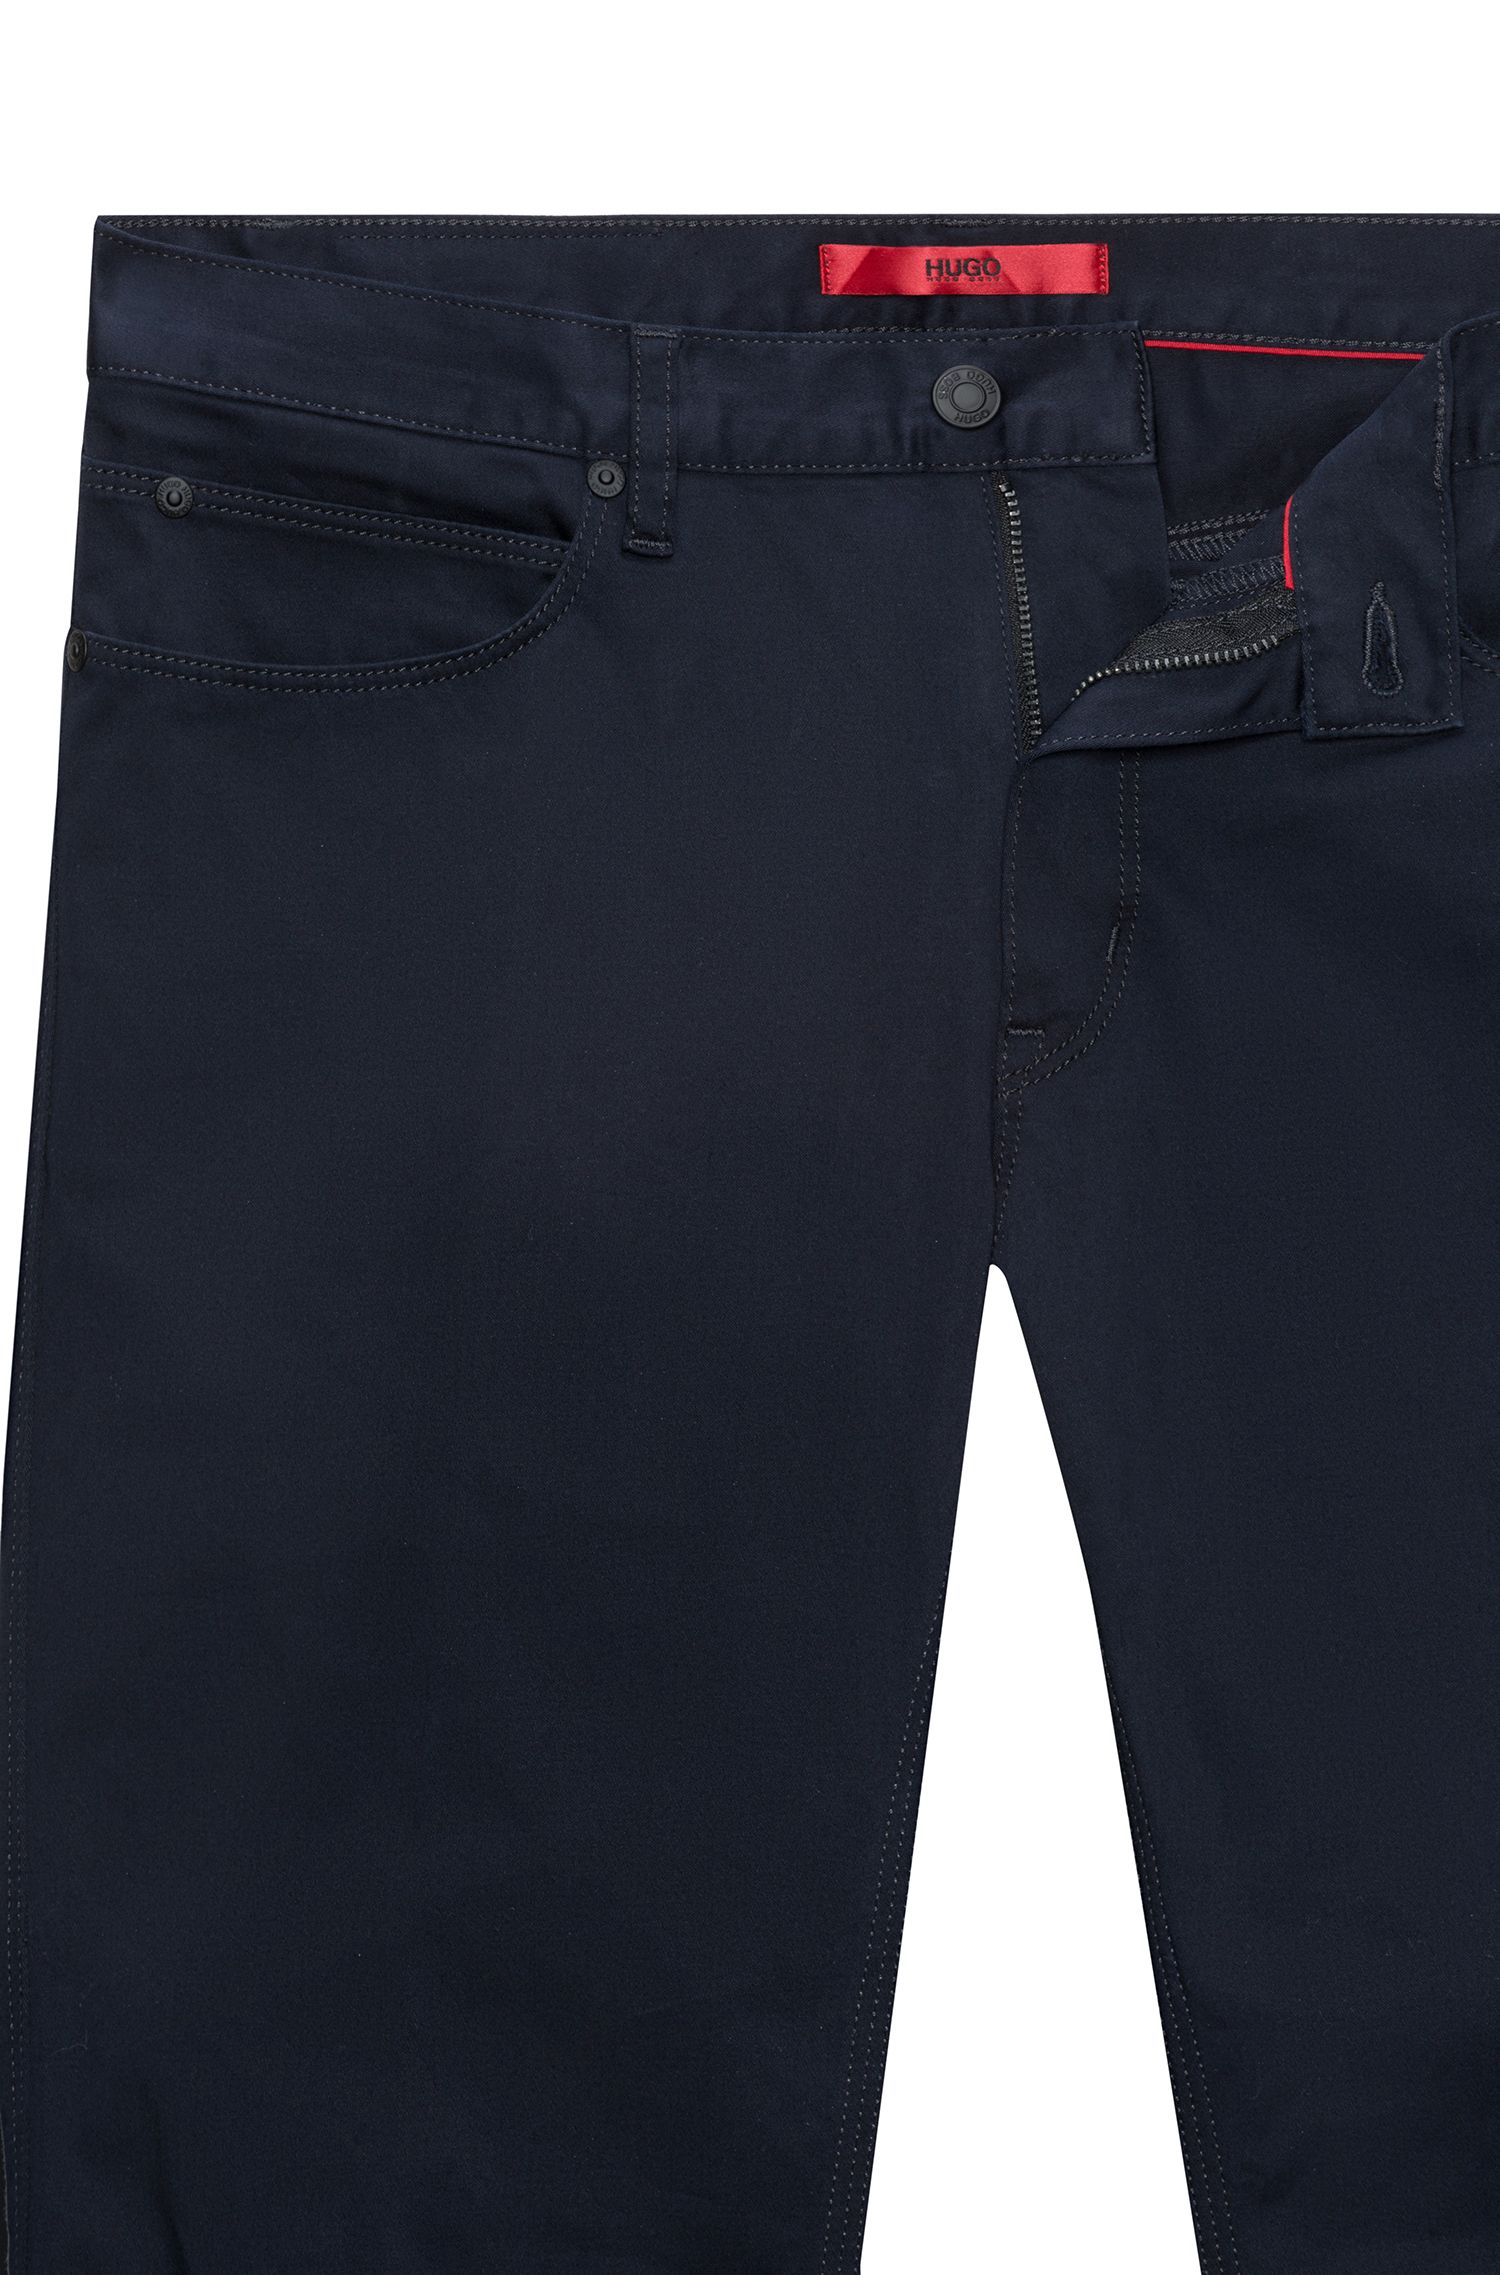 Hugo Boss - Slim-fit jeans in stretch denim with contrast piping - 5